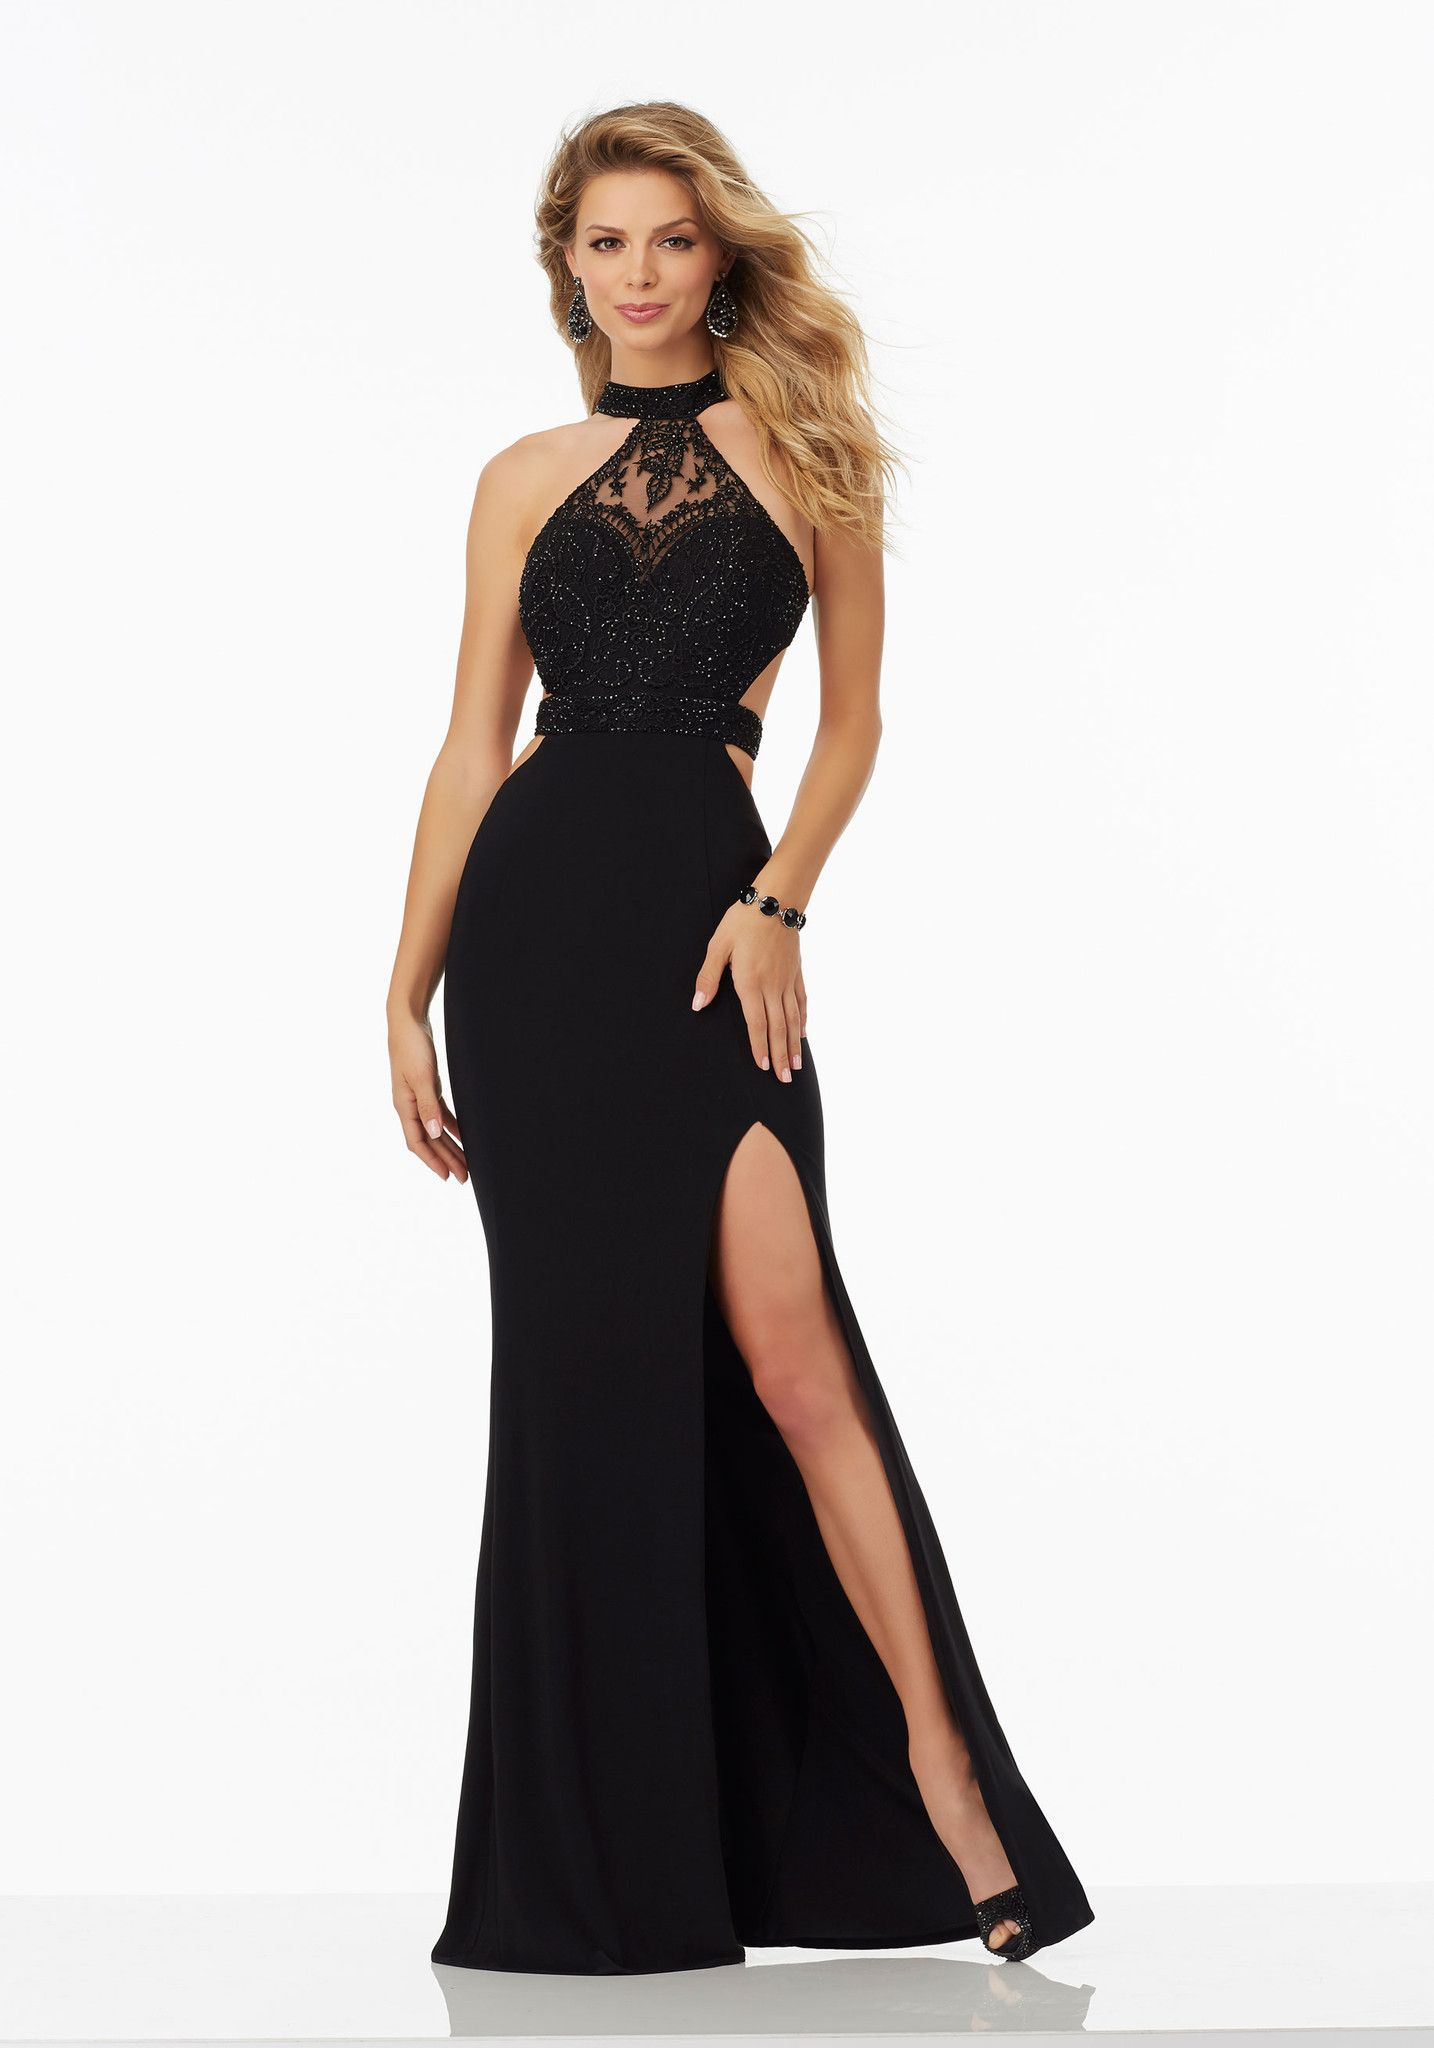 Morilee prom dress future prom pinterest prom formal